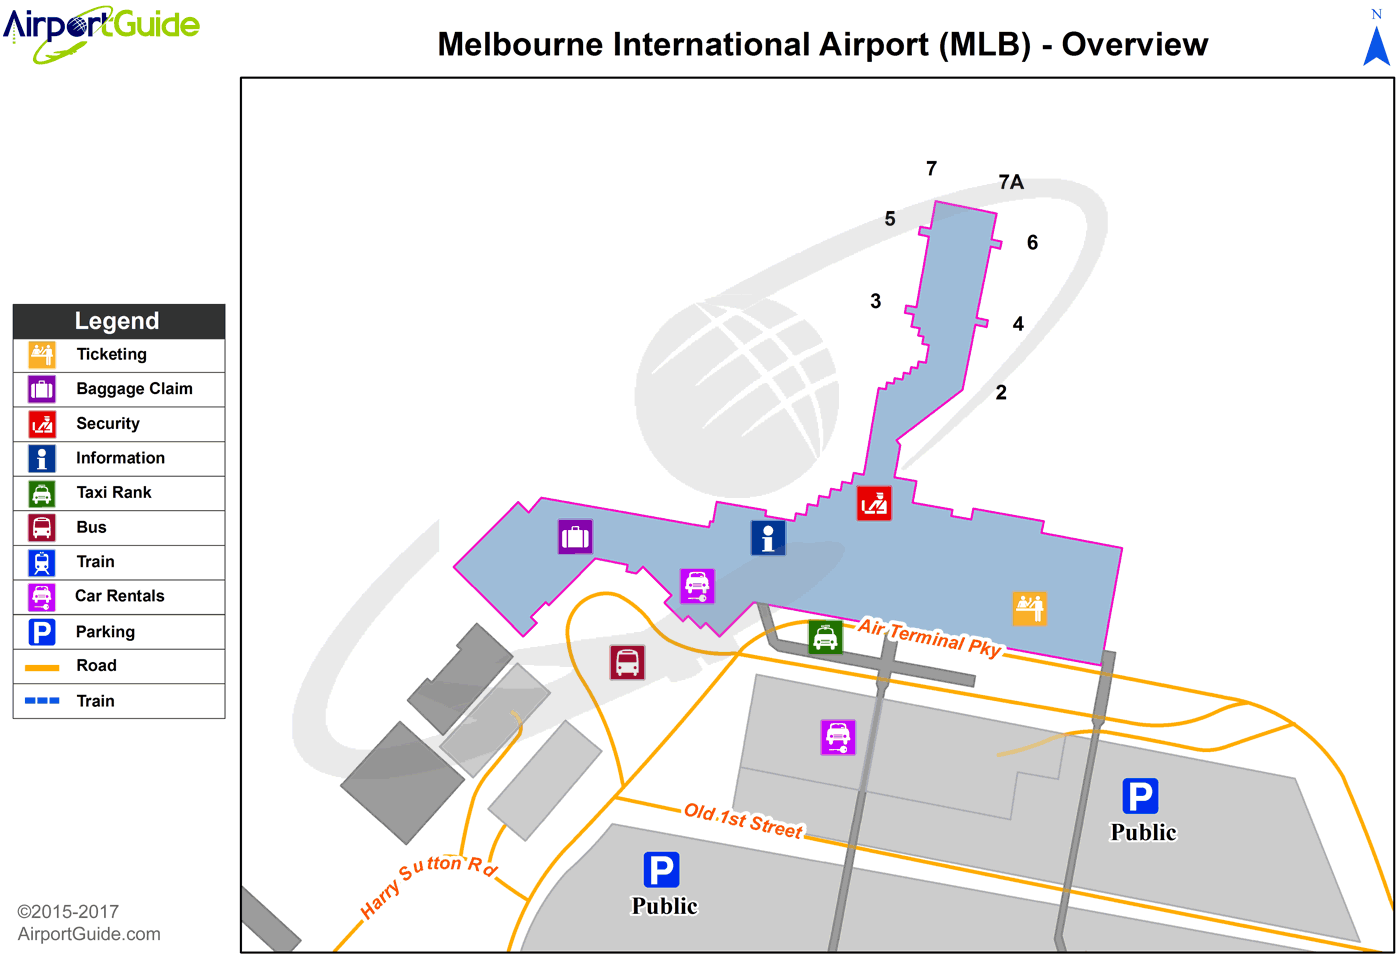 Melbourne - Melbourne International (MLB) Airport Terminal Map - Overview